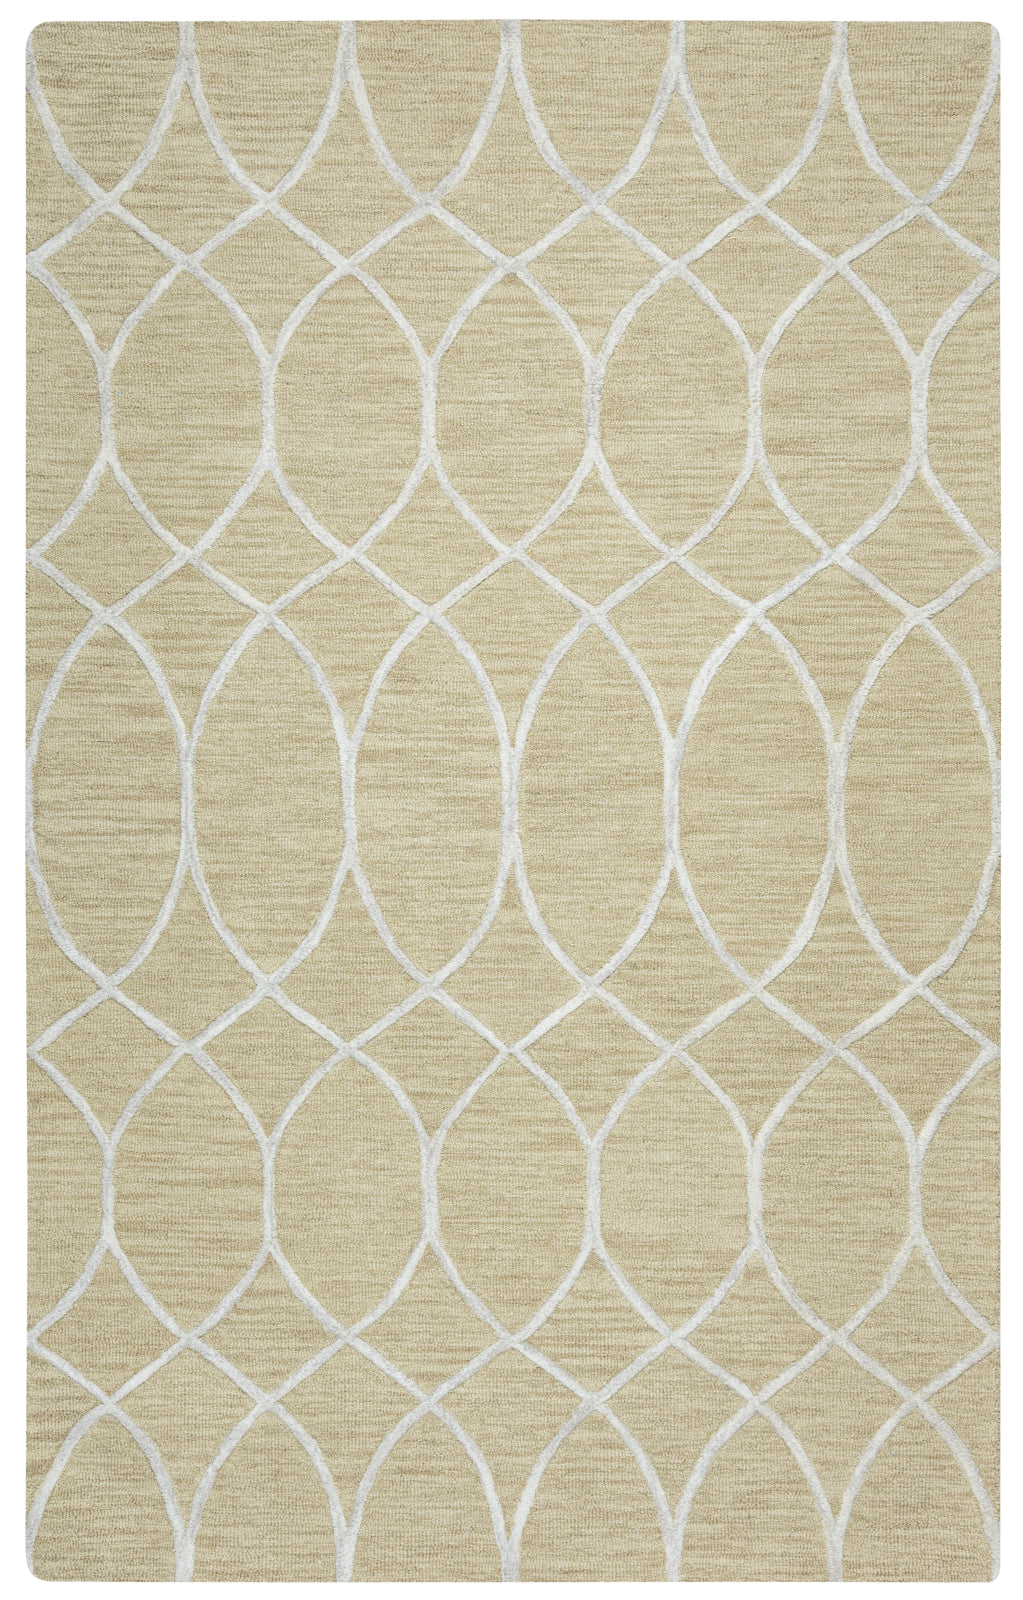 Rizzy Caterine CE9488 Beige Area Rug main image